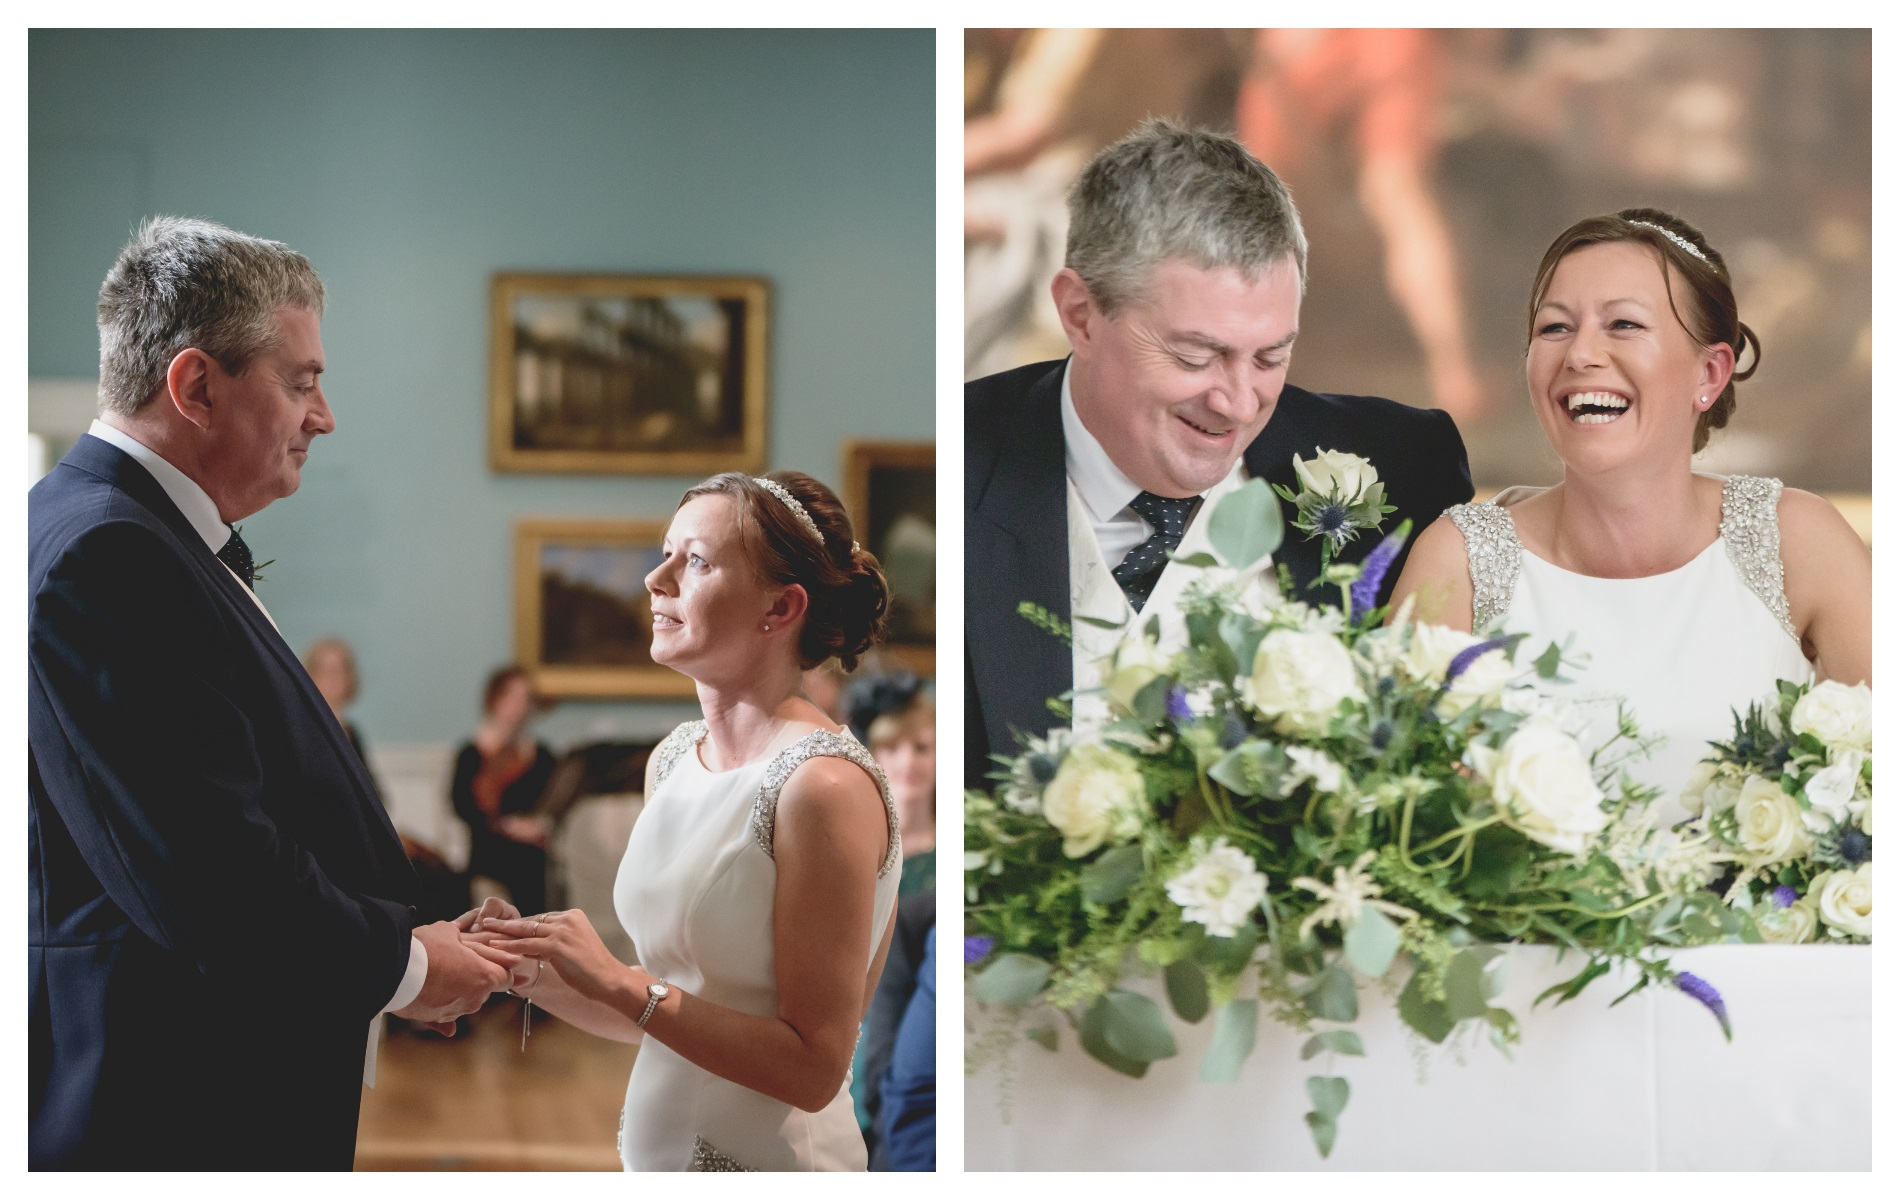 Compton Verney Wedding Photography by Chris Fossey Photography Claire 5